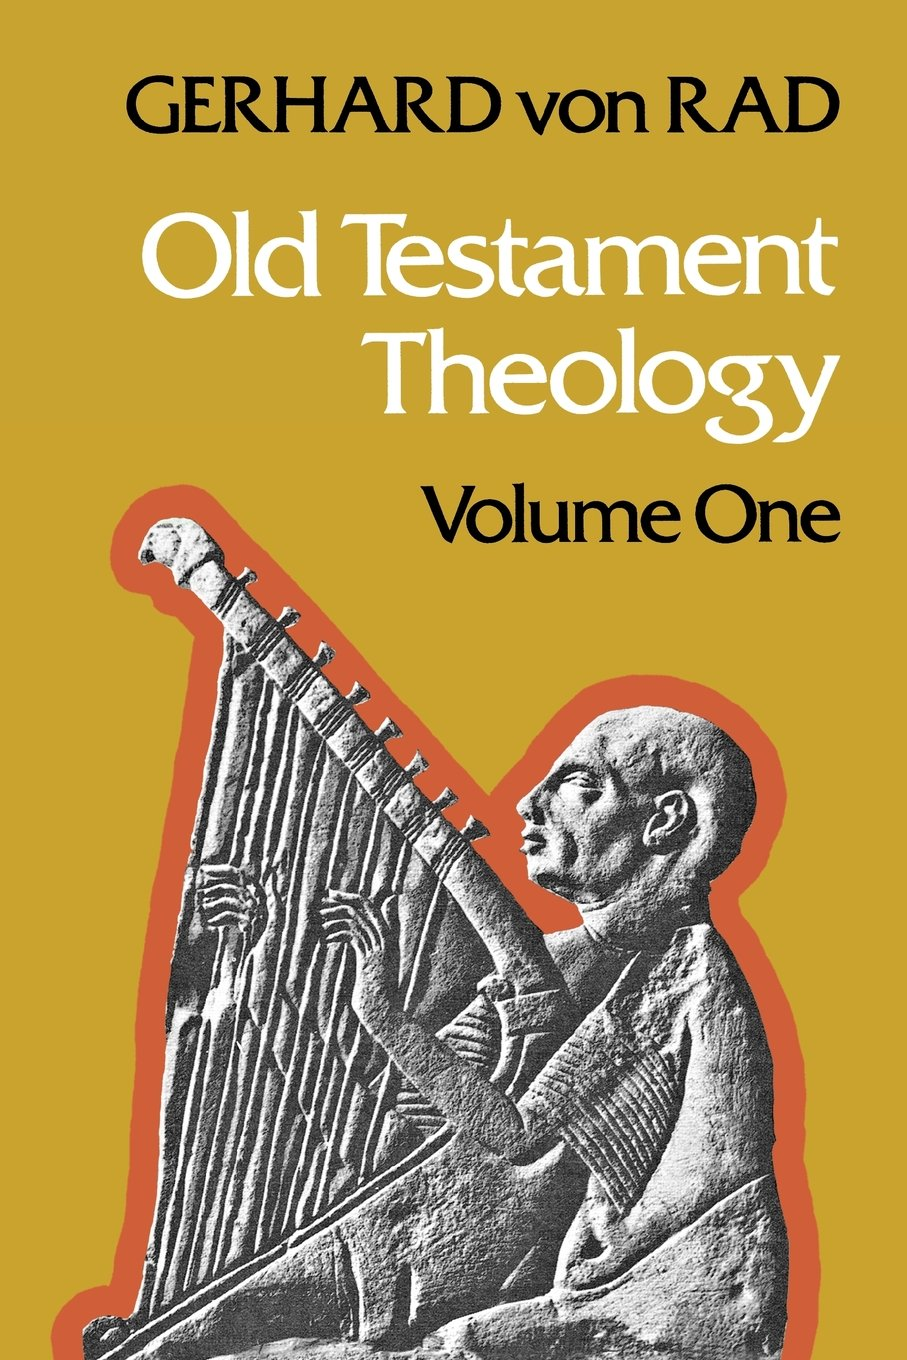 Old Testament Theology Volume One